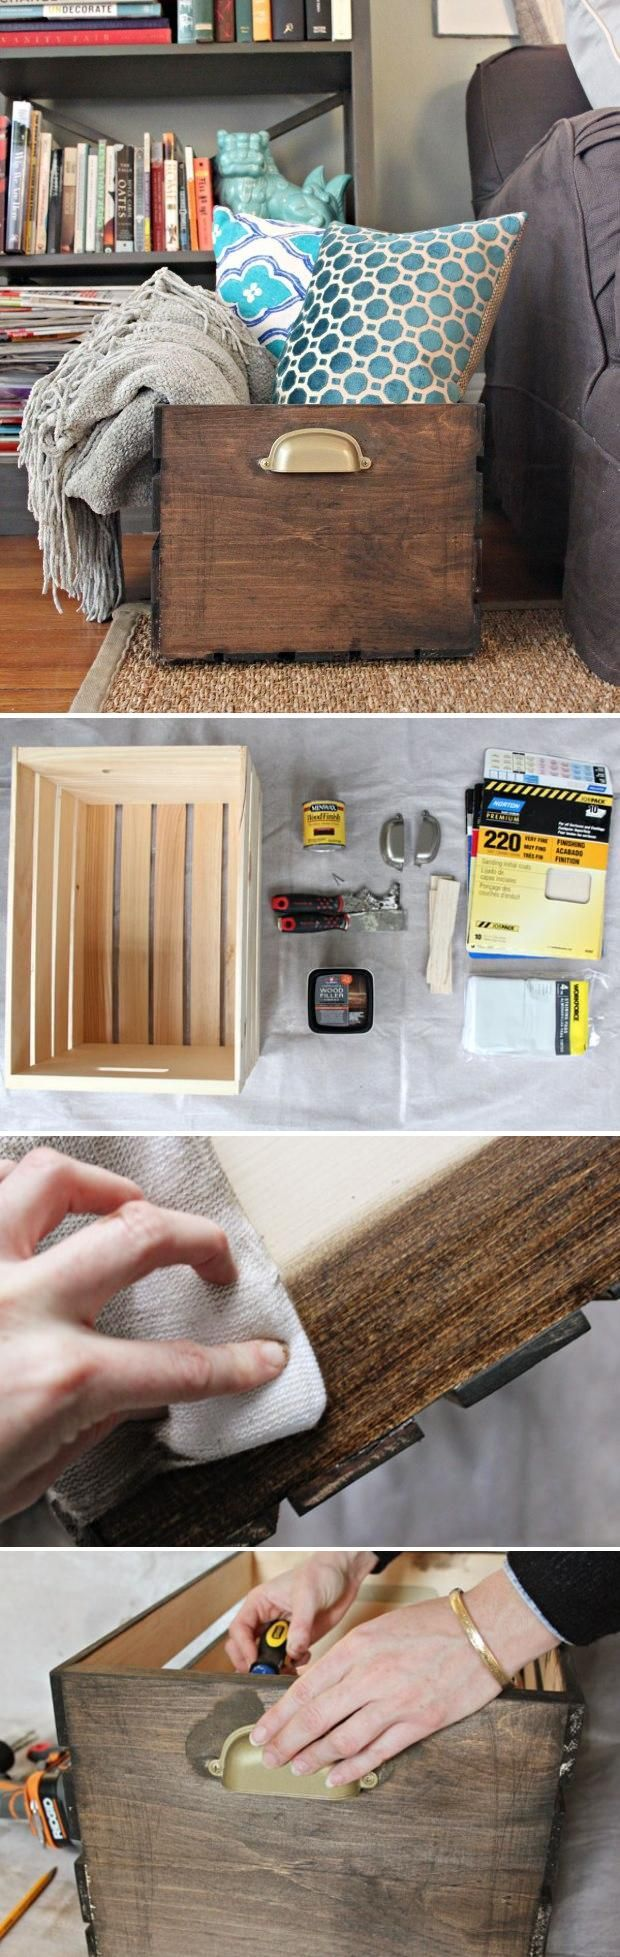 Be Creative: DIY Home Decor Ideas DIY Décor: How To Customize A Wooden Storage Crate. This actually links to the full tutorial!